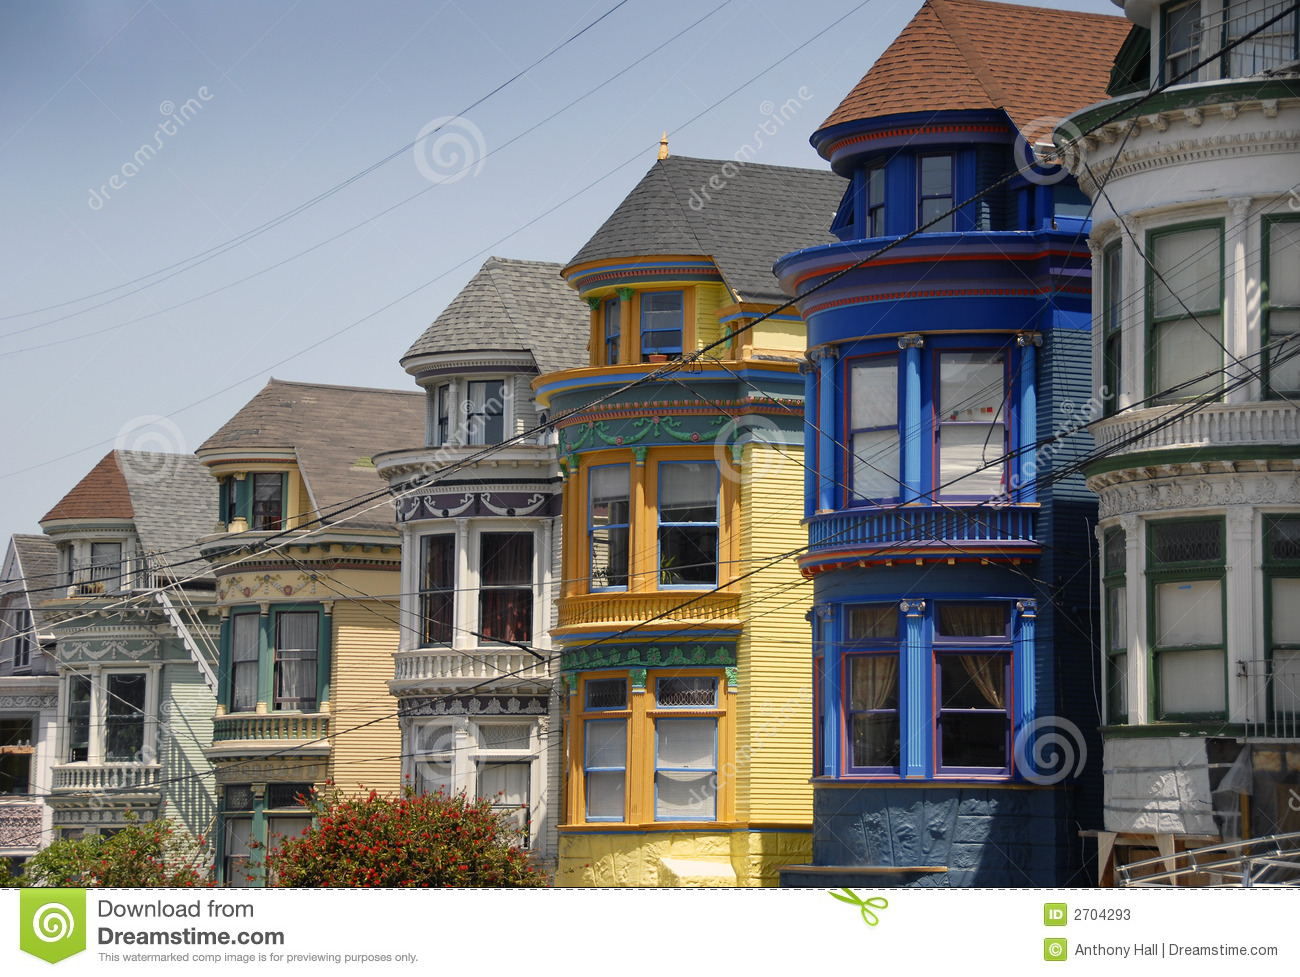 San francisco victorian houses stock image image of for Houses in san francisco